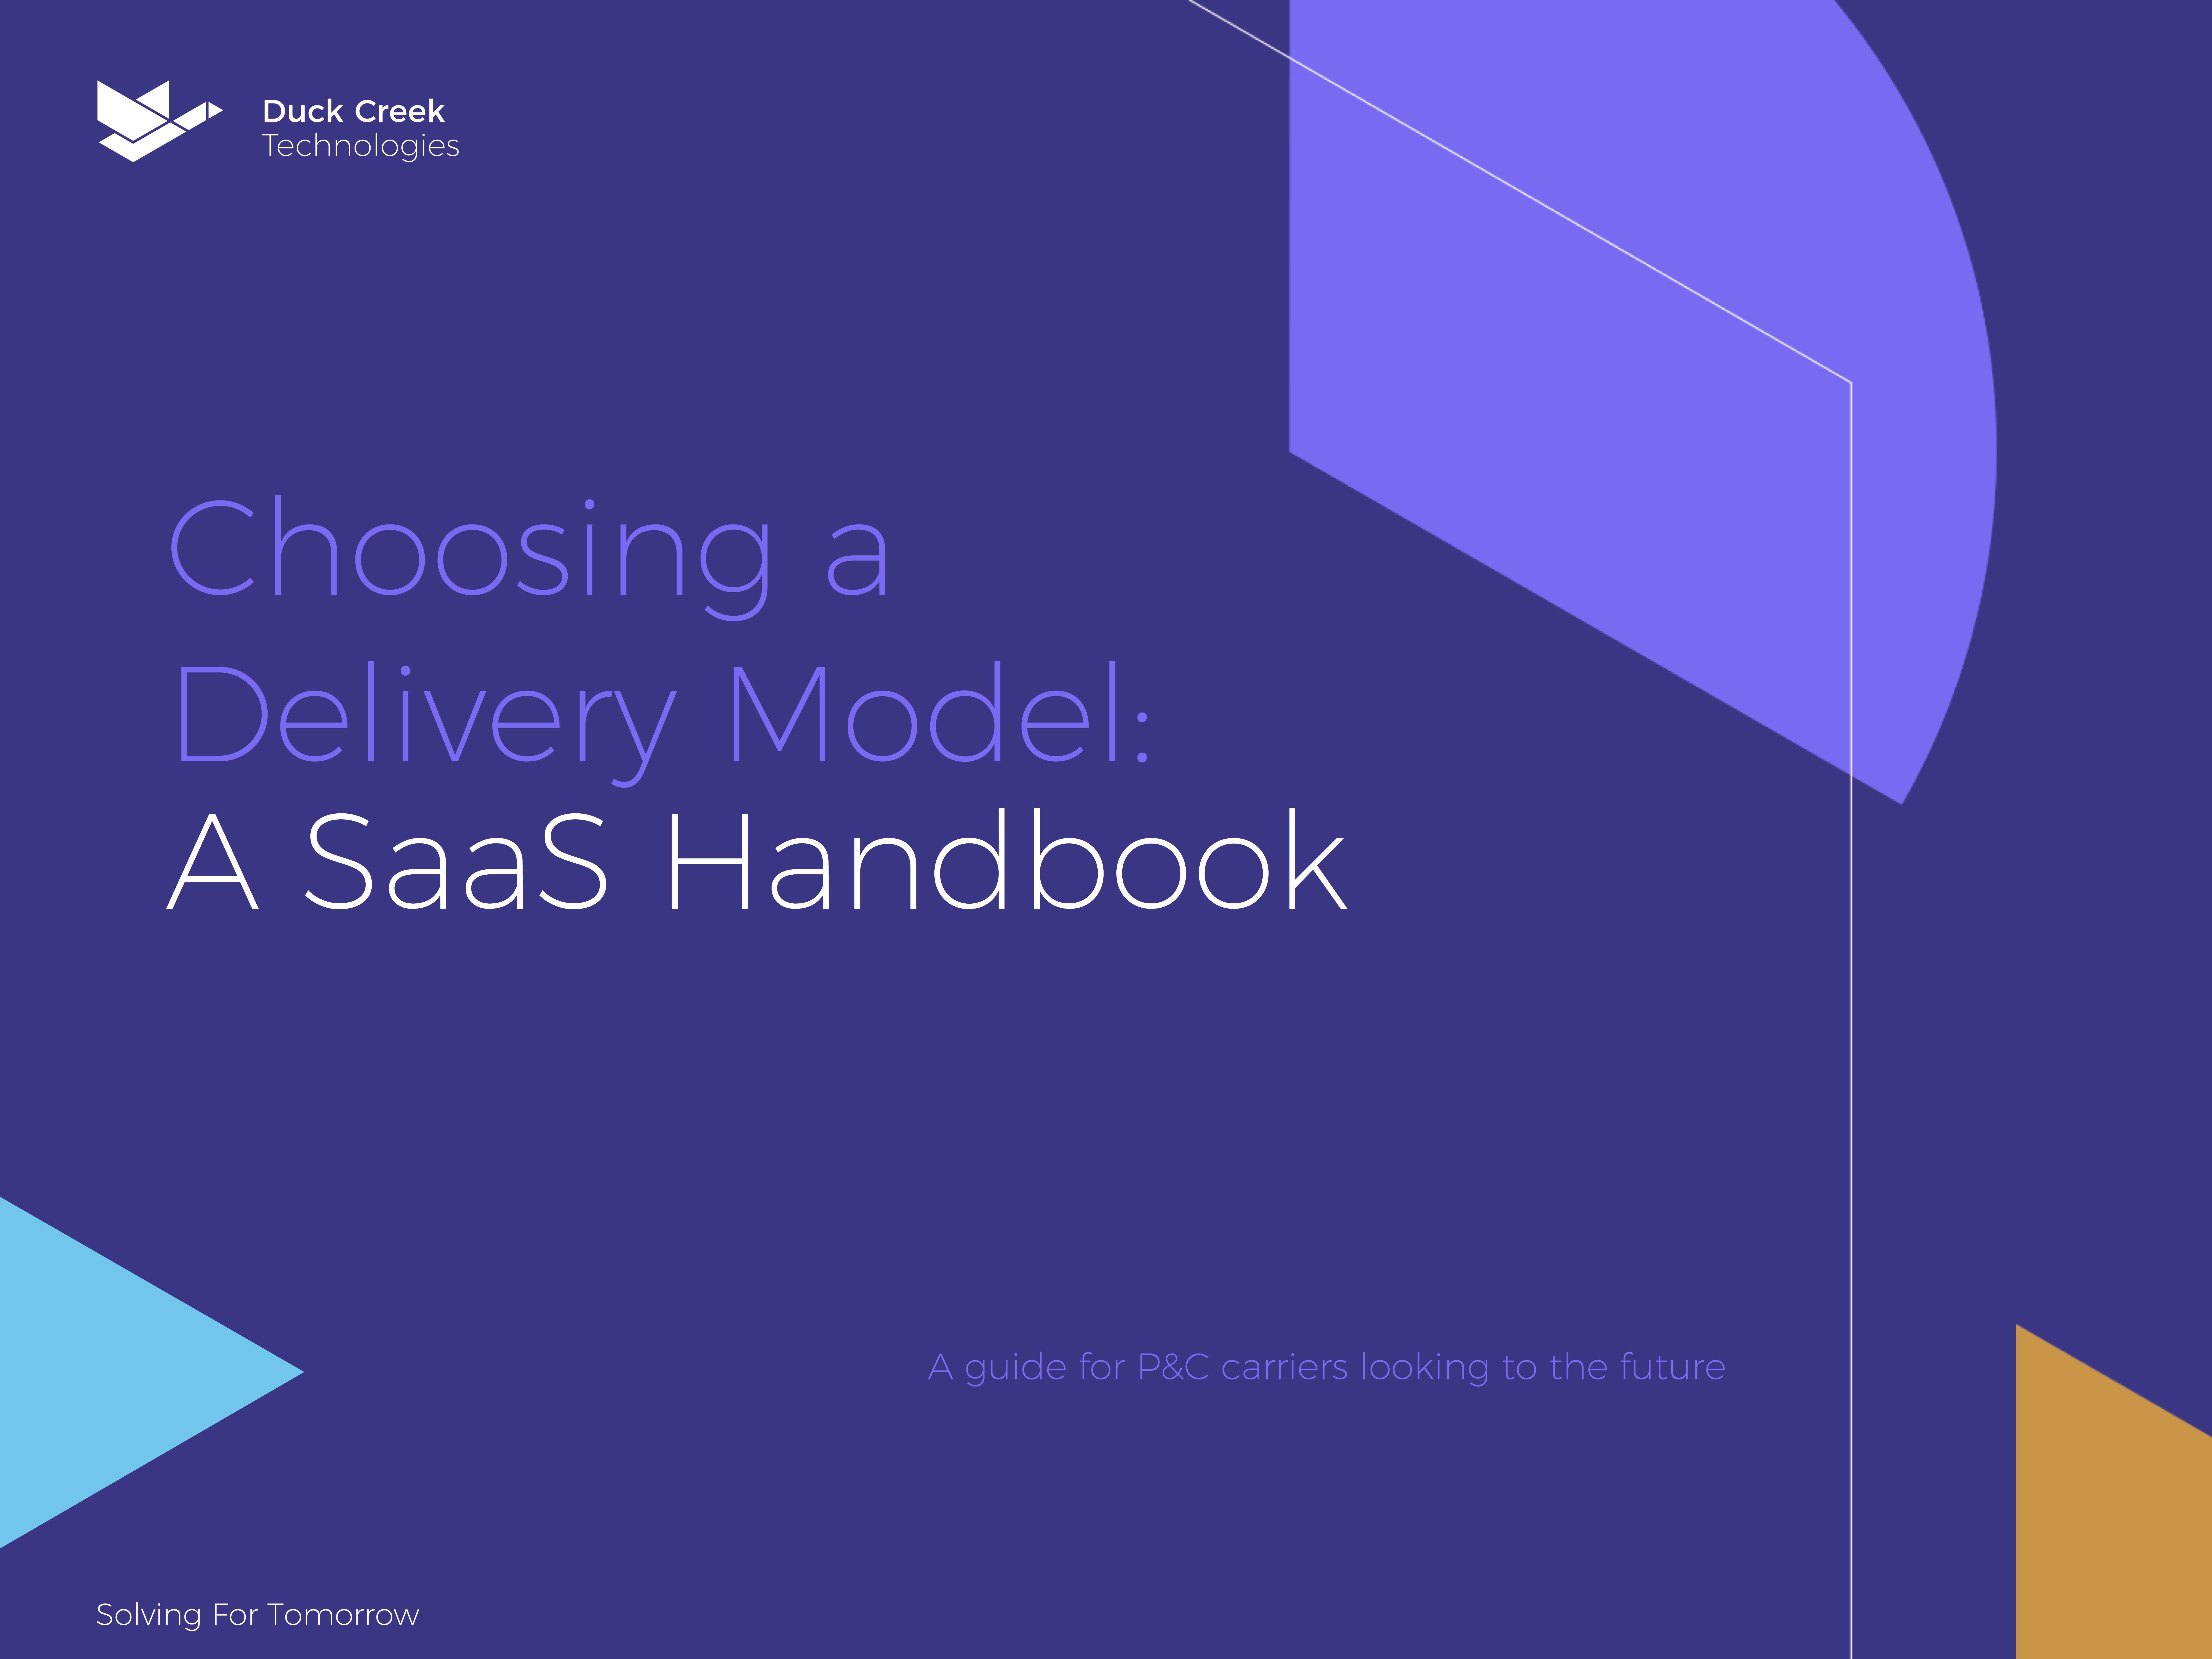 Choosing a Delivery Model - A SaaS Handbook - Print Edition Cover Image.png